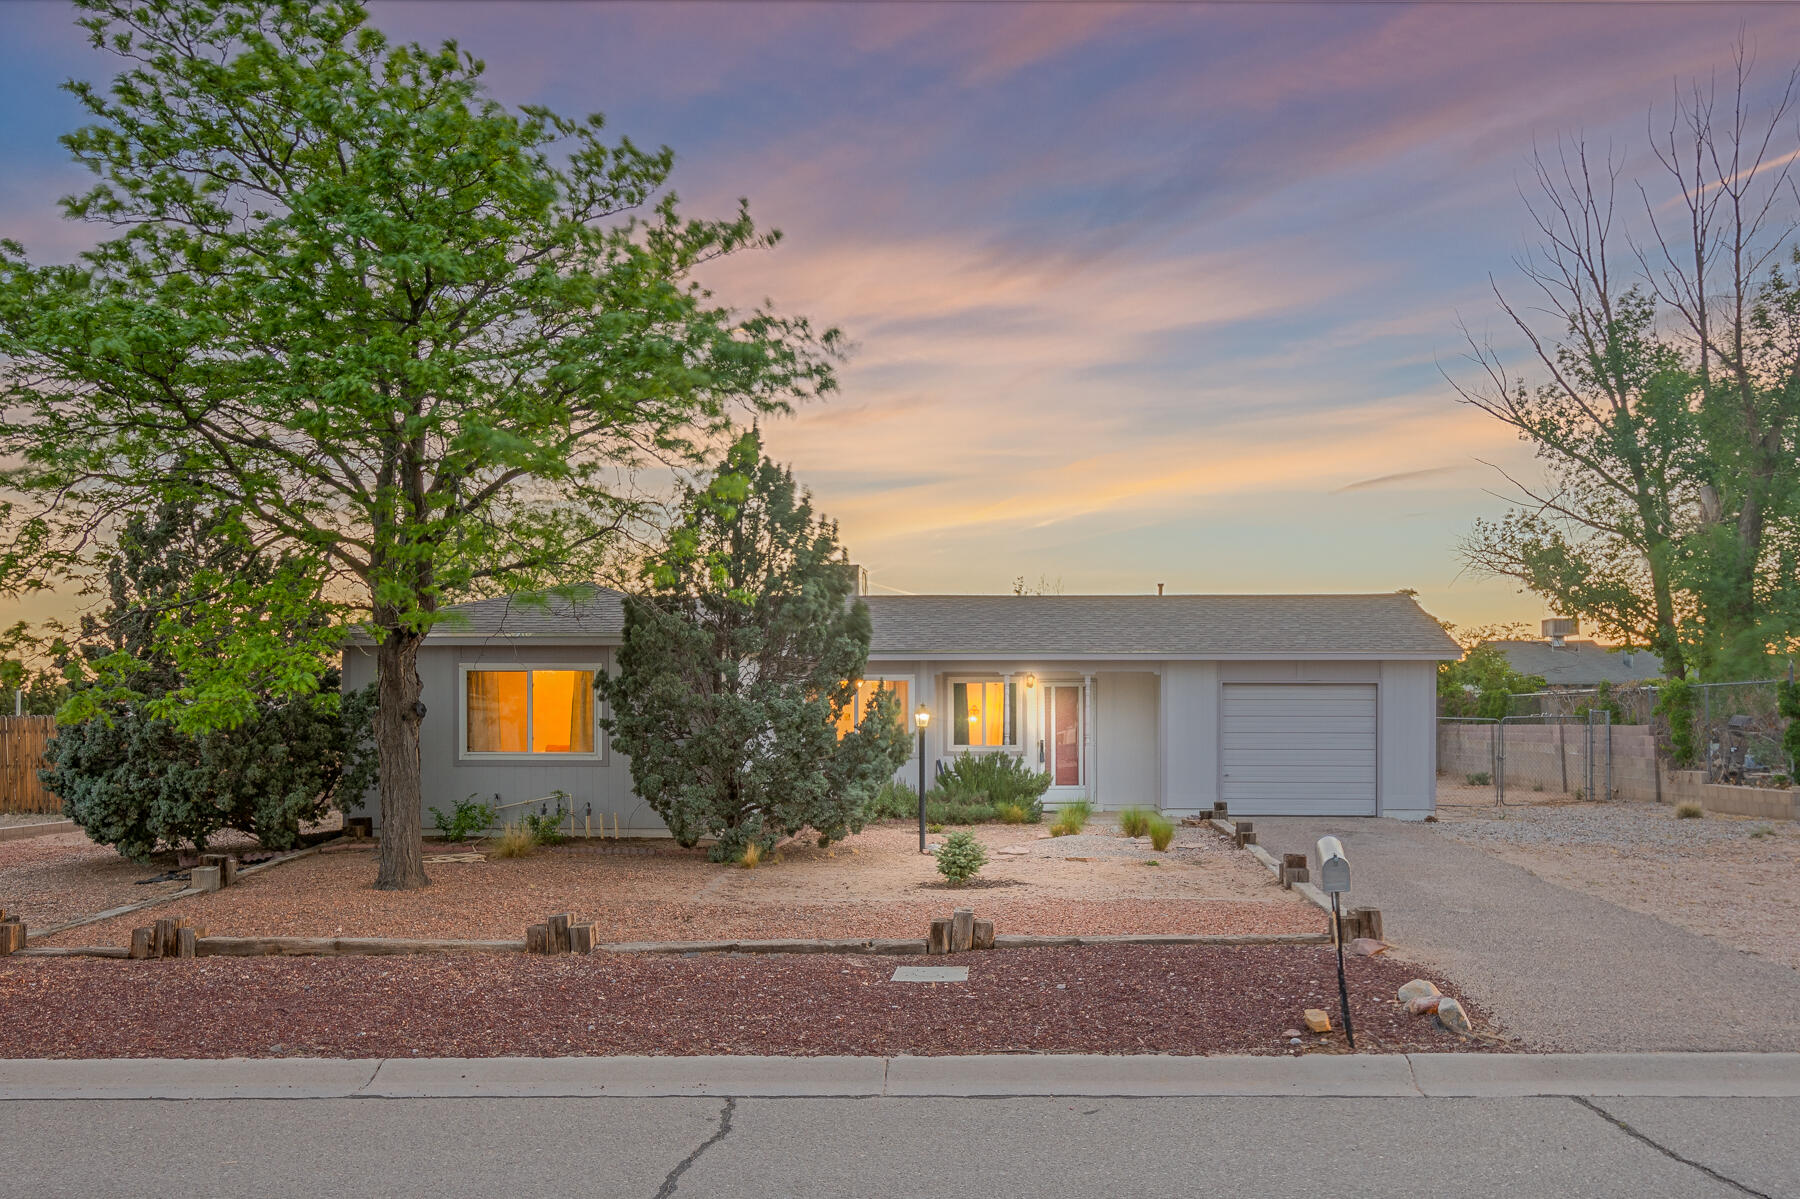 WOW - a charming, well maintained home in Rio Rancho for a great price! When you enter, enjoy the newly installed laminate flooring in the living room and dining room. Be also wowed by the new furnace (3/2021), the new(er) roof (5 years old), a new(er) Mastercool (5 years old) and new windows in 2006. Looking for more room for vehicles or play space? This large lot has backyard access on BOTH sides - plenty of room to grow. This is an awesome investment opportunity as a first home, a retirement home or anything in between, this home is waiting for you!